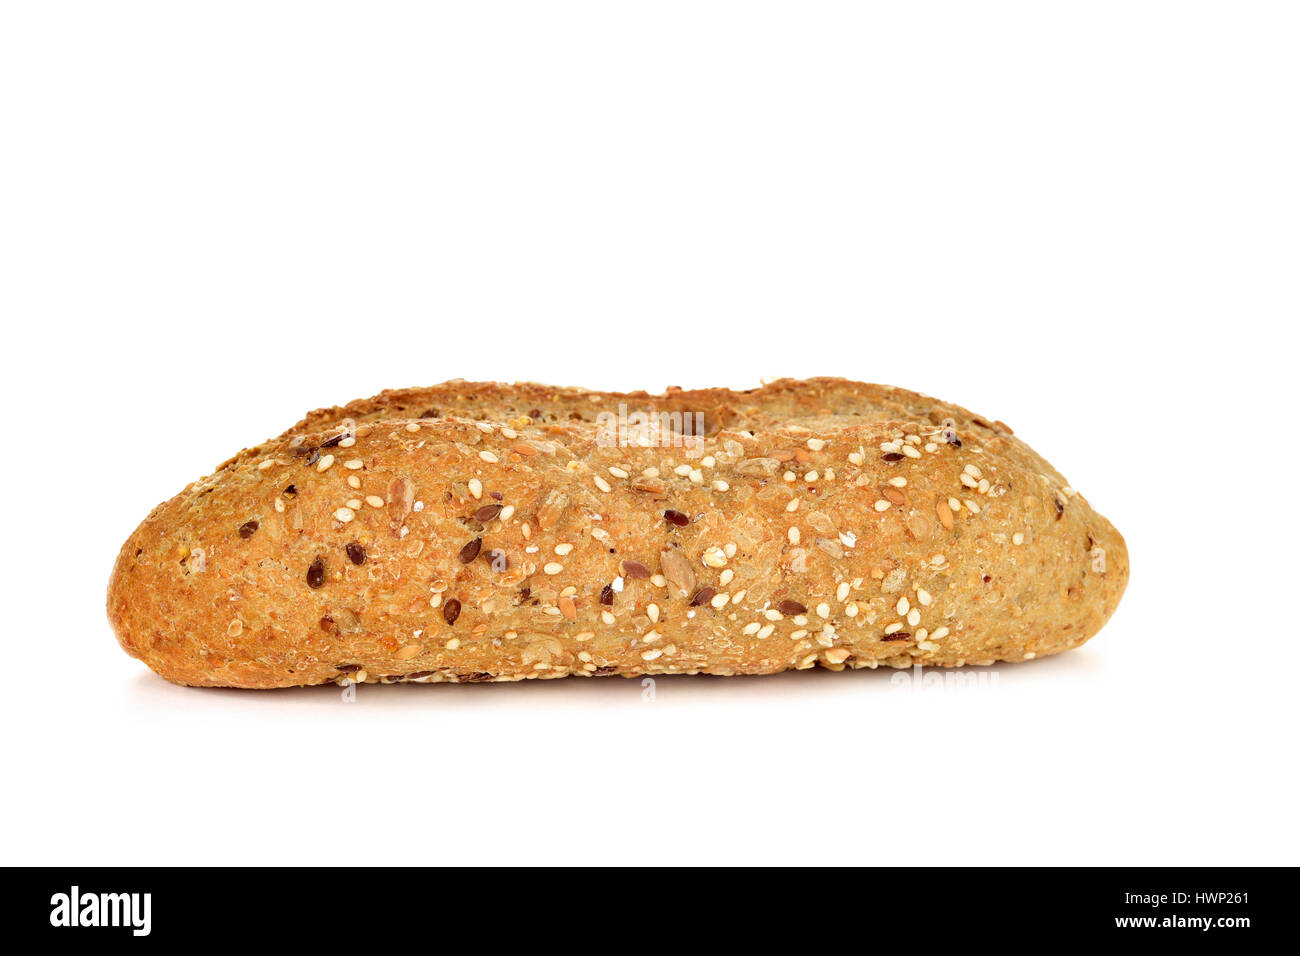 closeup of a wholemeal bread roll topped with different seeds, such as sesame and poppy seeds, on a white background - Stock Image